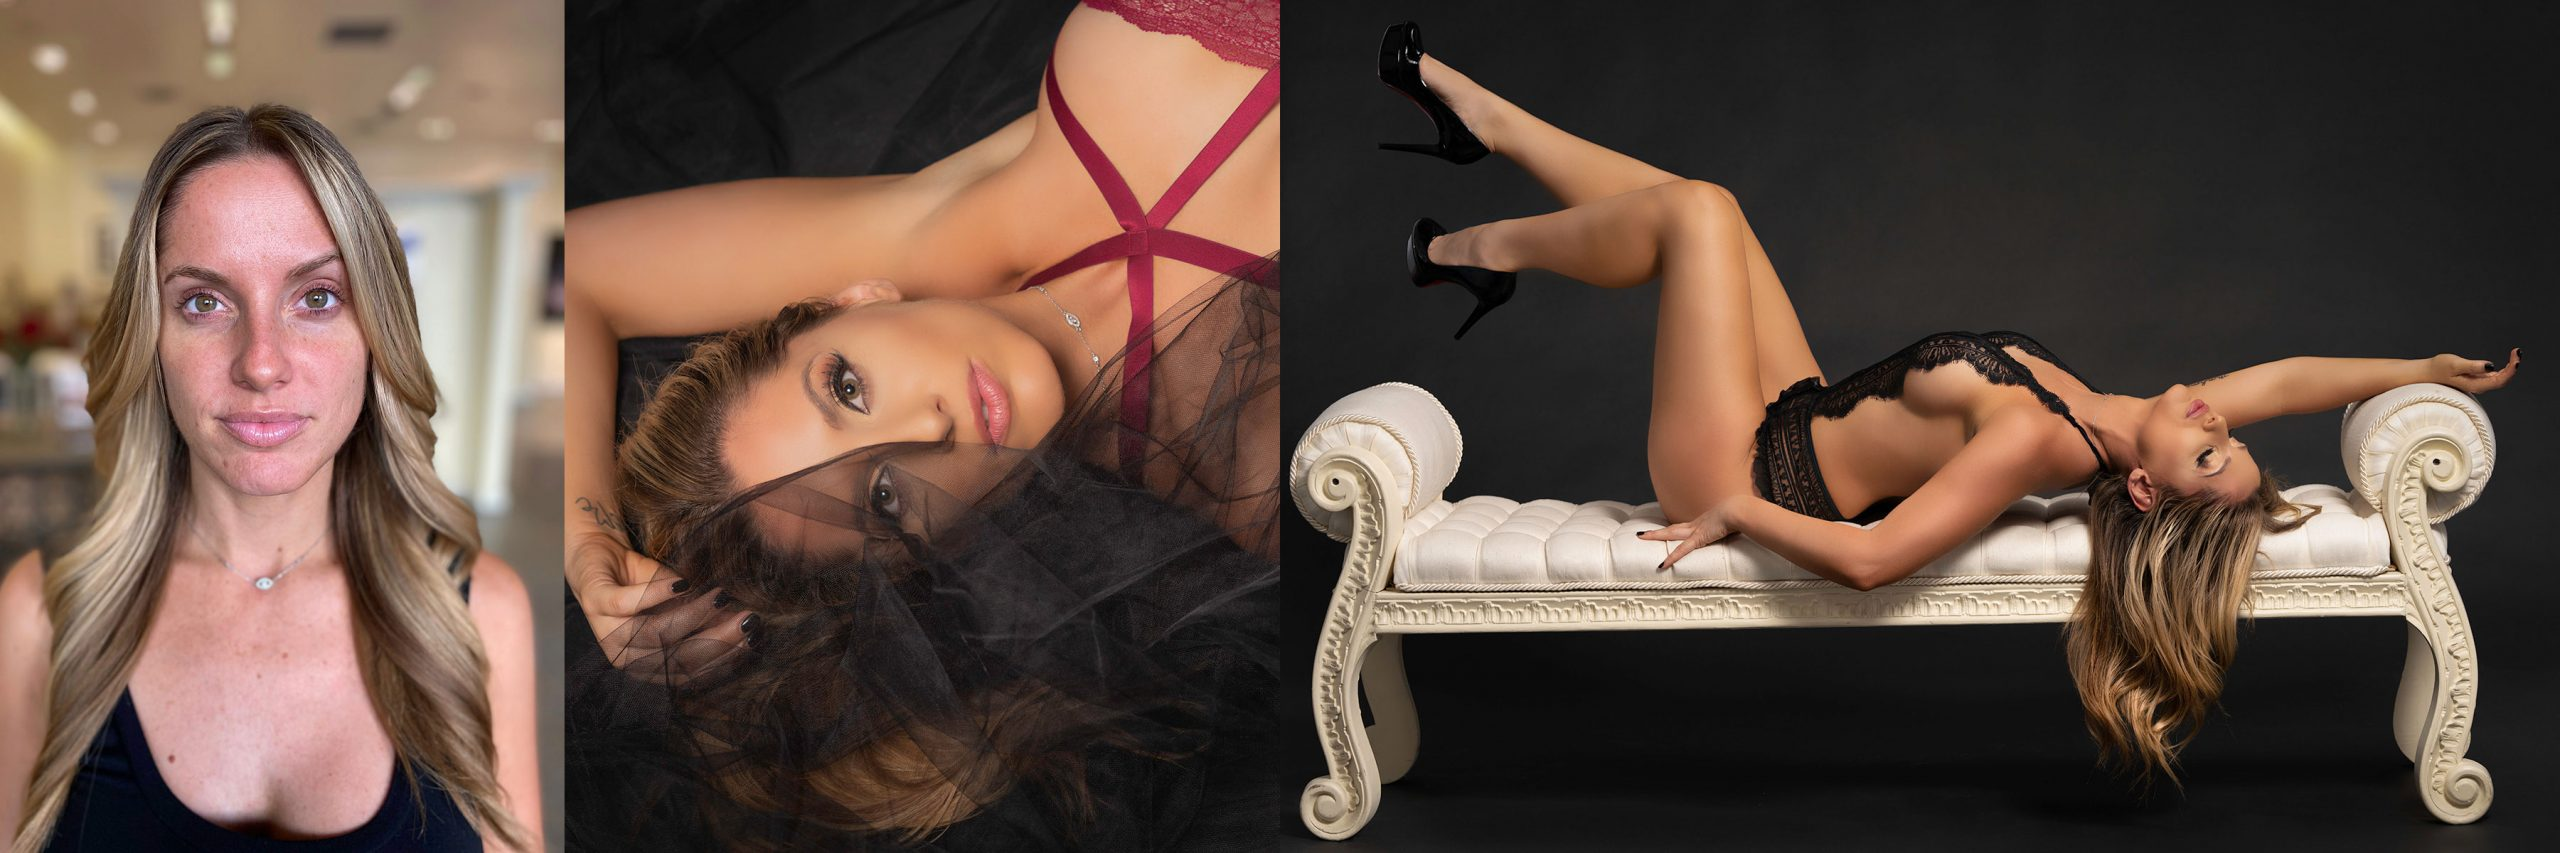 Samantha before and after boudoir photoshoot collection.